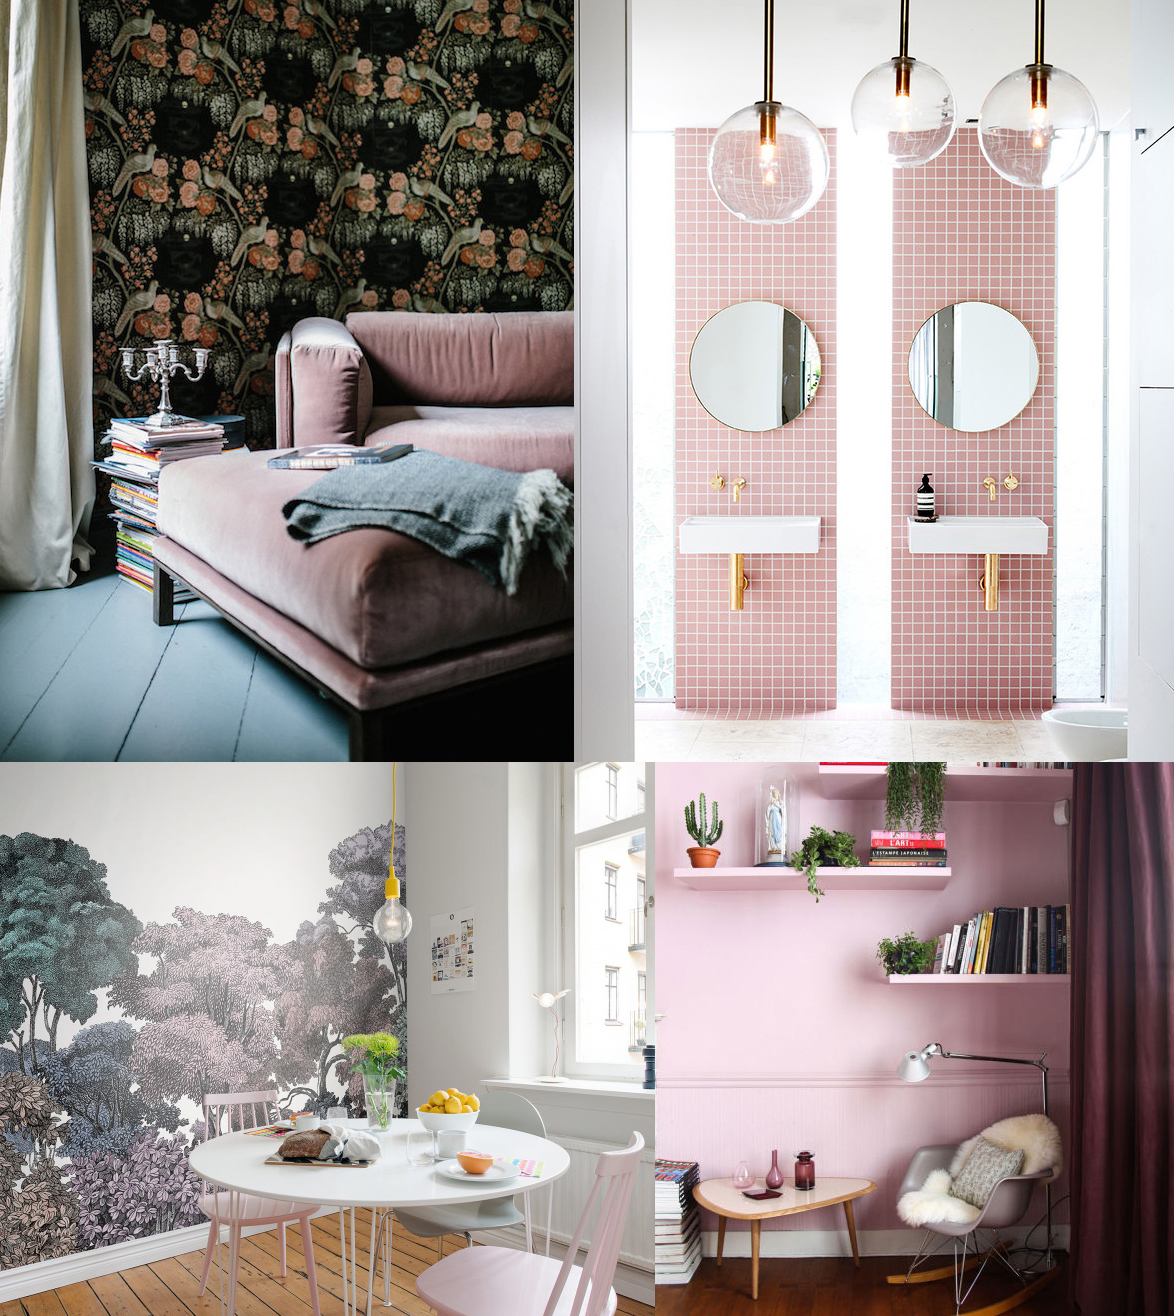 Pink - Silke Von Wit - Domino - Rebel Walls - The Socialite Family